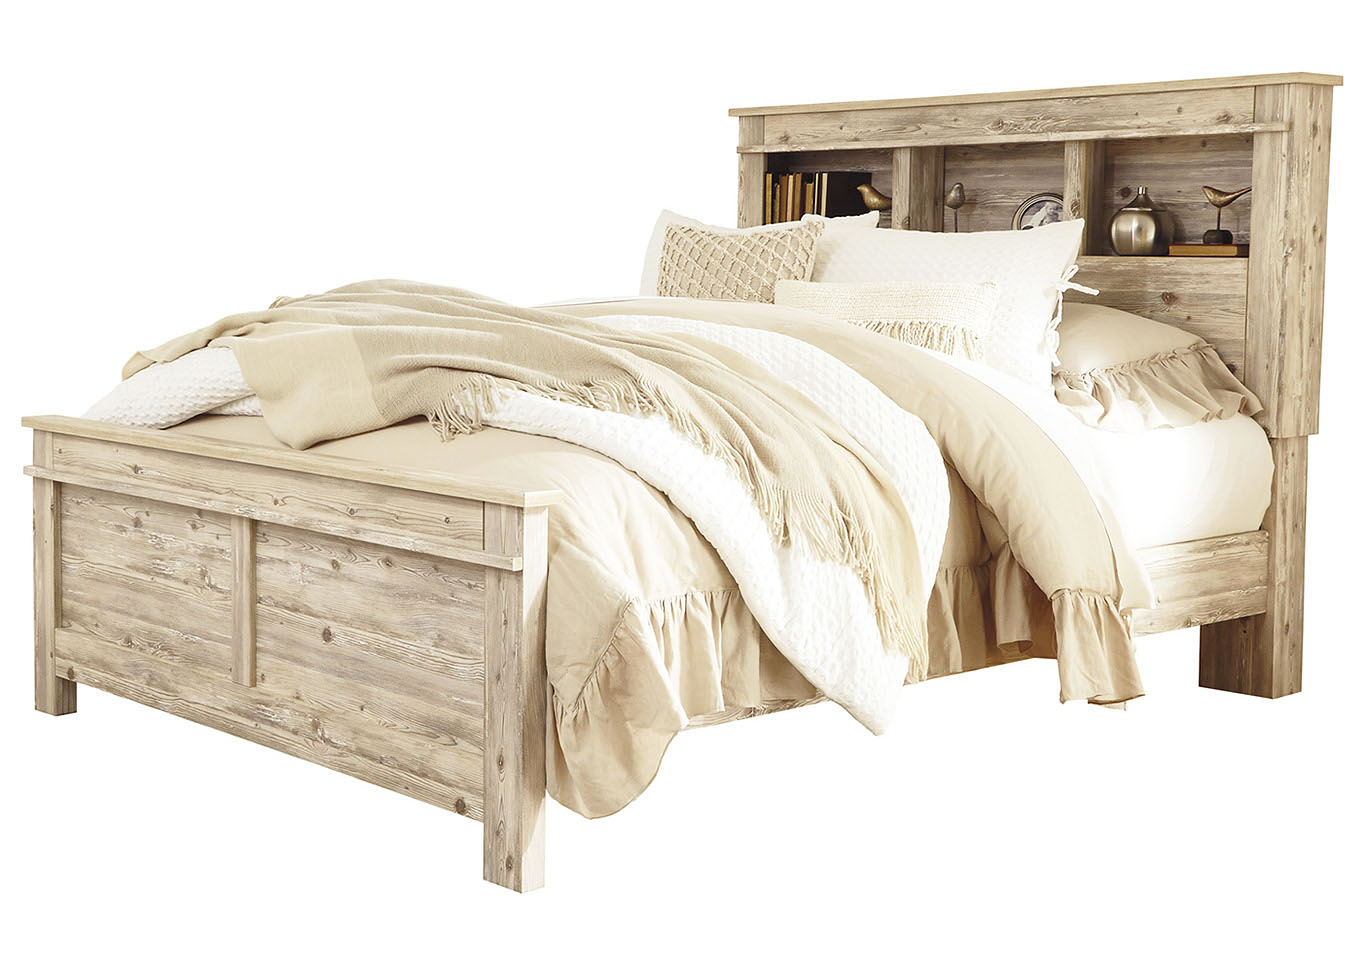 Willabry Weathered Beige Bookcase Headboard King/California King Panel Bed,Signature Design By Ashley